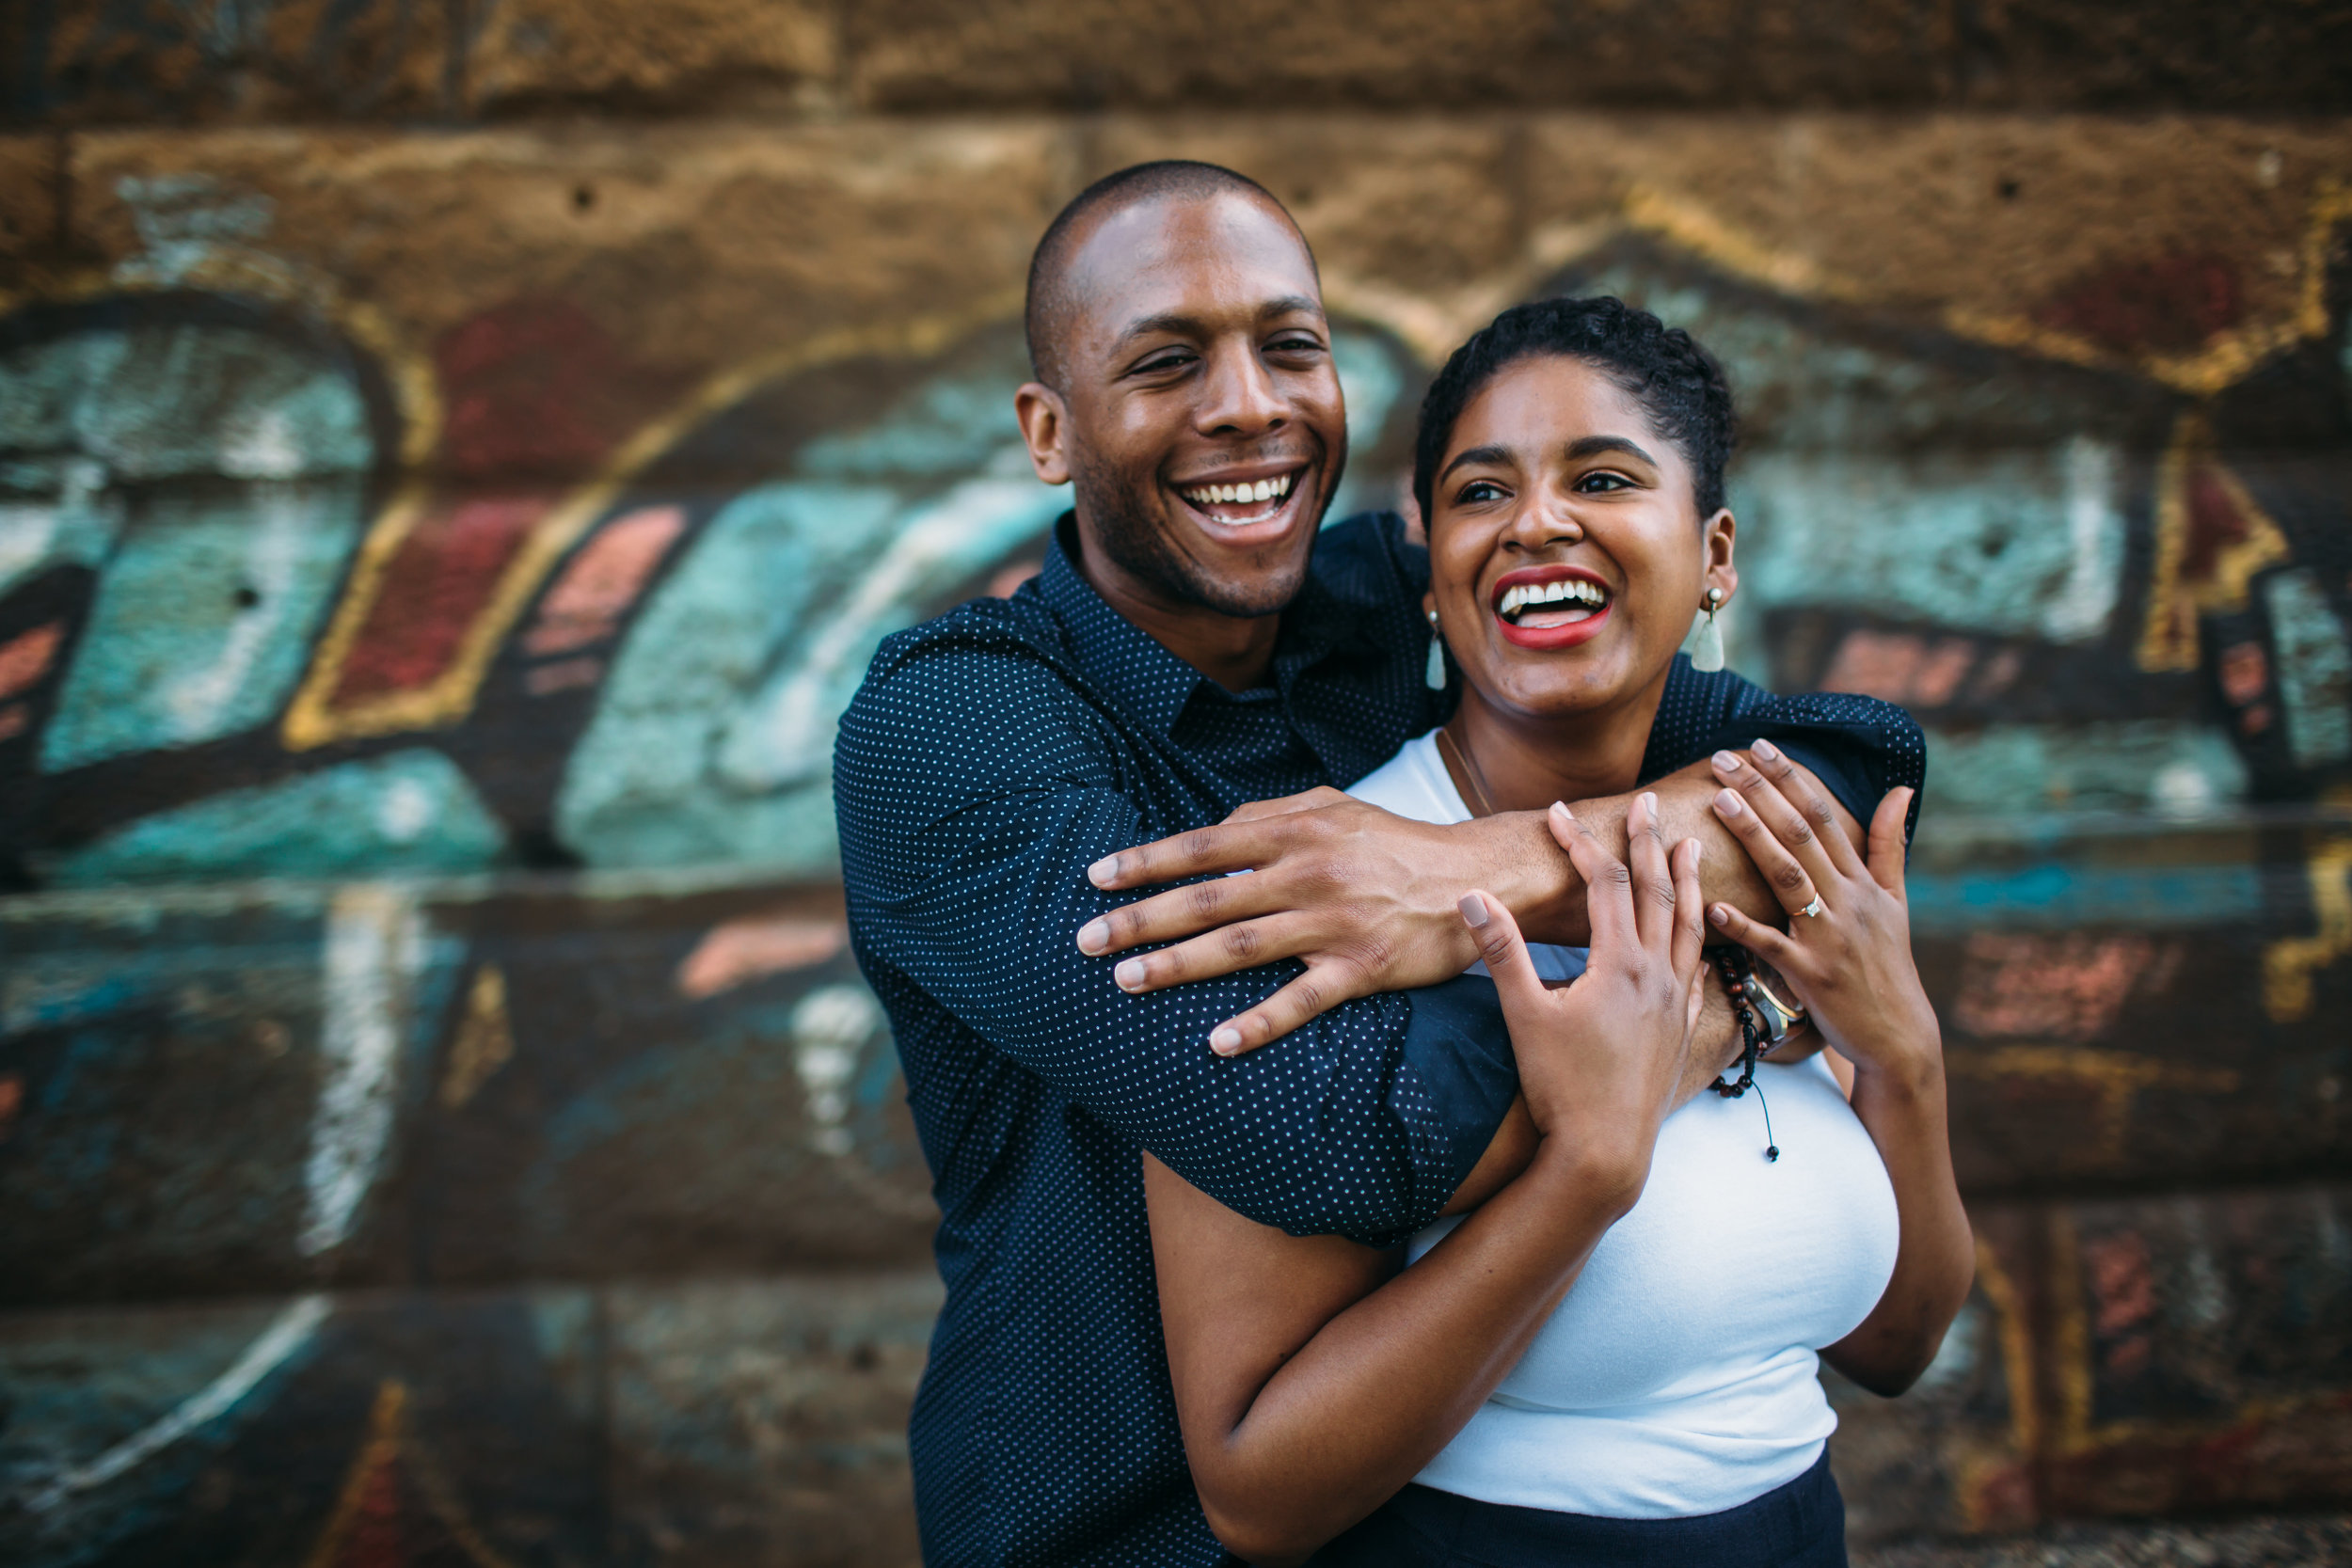 travelling engagement photographer, travelling wedding photographer, chicago engagement photos, engagement photography St. Louis, engagement portraits utah, engagement photography utah